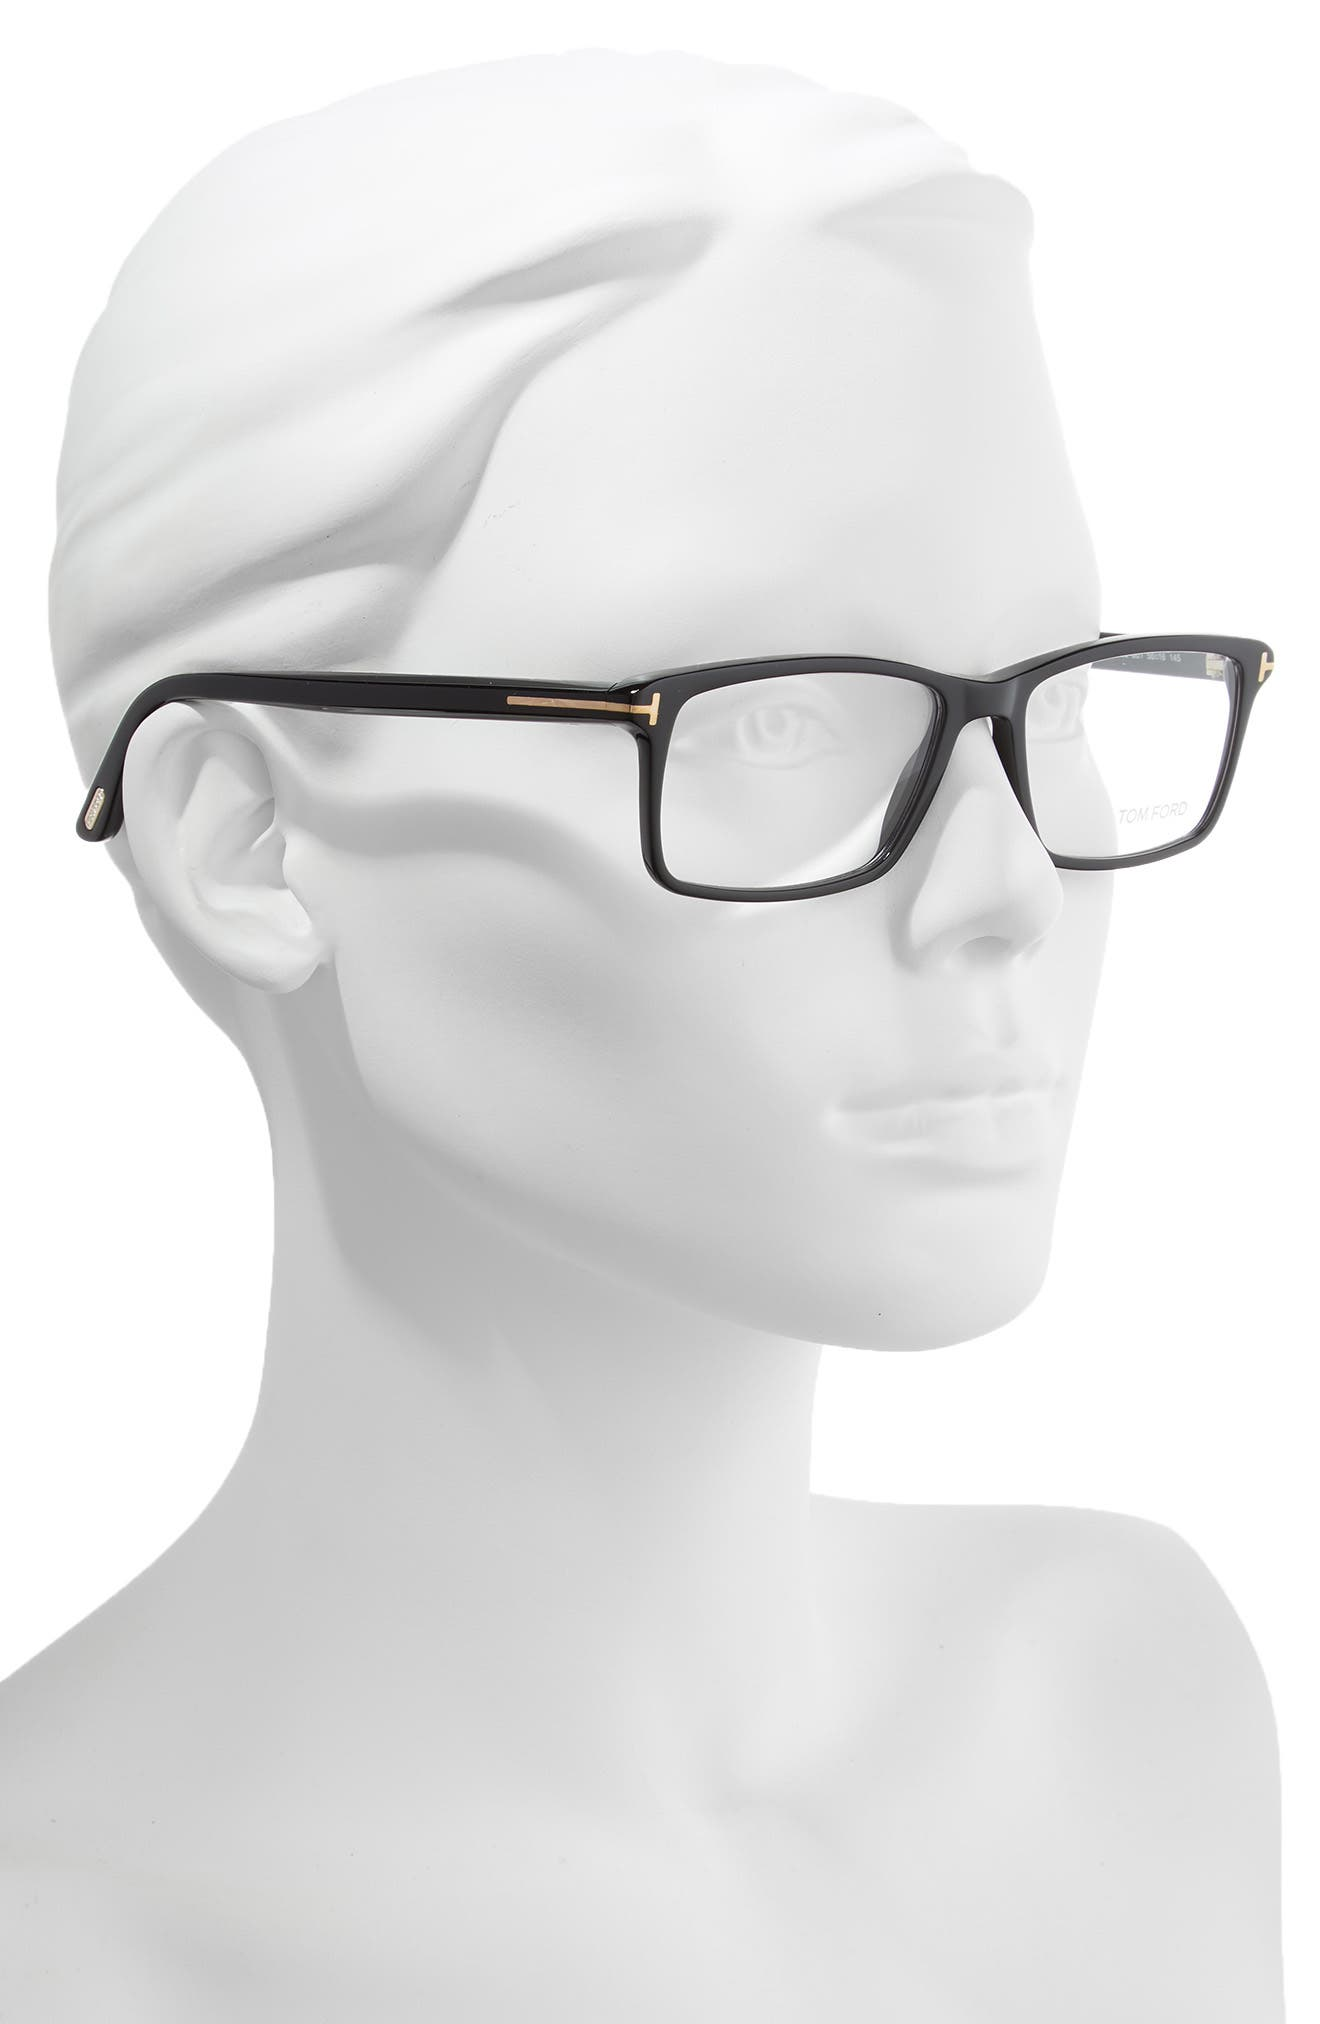 56mm Rectangle Optical Glasses,                             Alternate thumbnail 2, color,                             SHINY BLACK/ SHINY ROSE GOLD